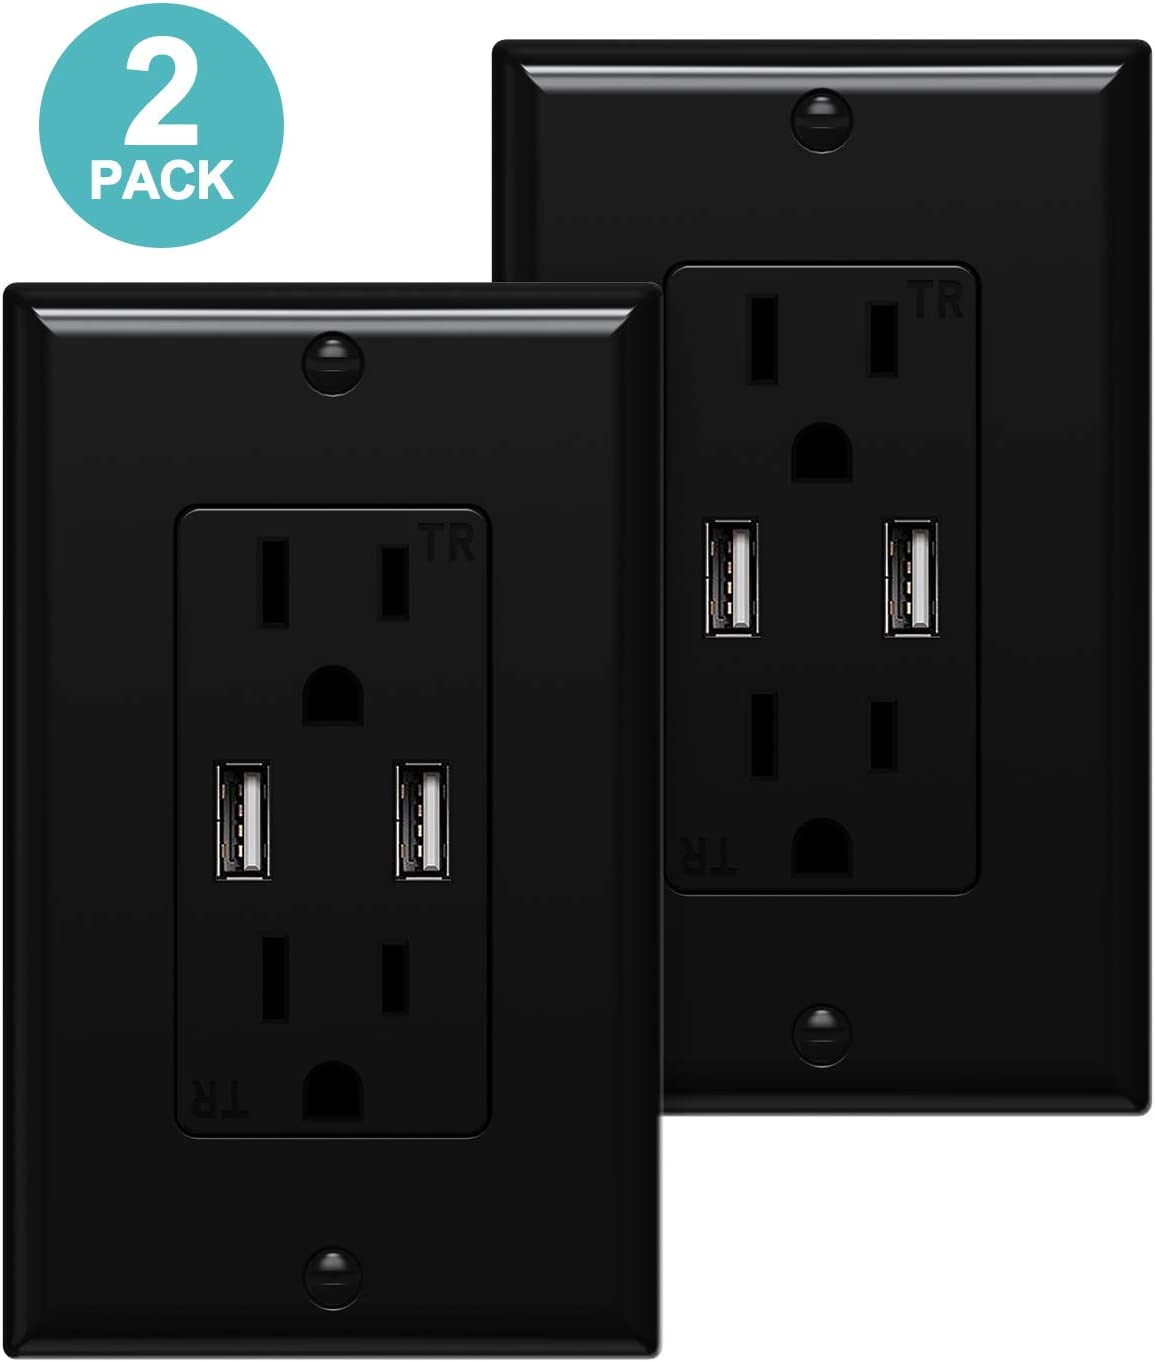 USB Wall Outlet Black 3.1A Dual Smart High Speed USB Charger Electrical Outlet 15Amp//125V Receptacle 1Pack Wall Plate Screw Included